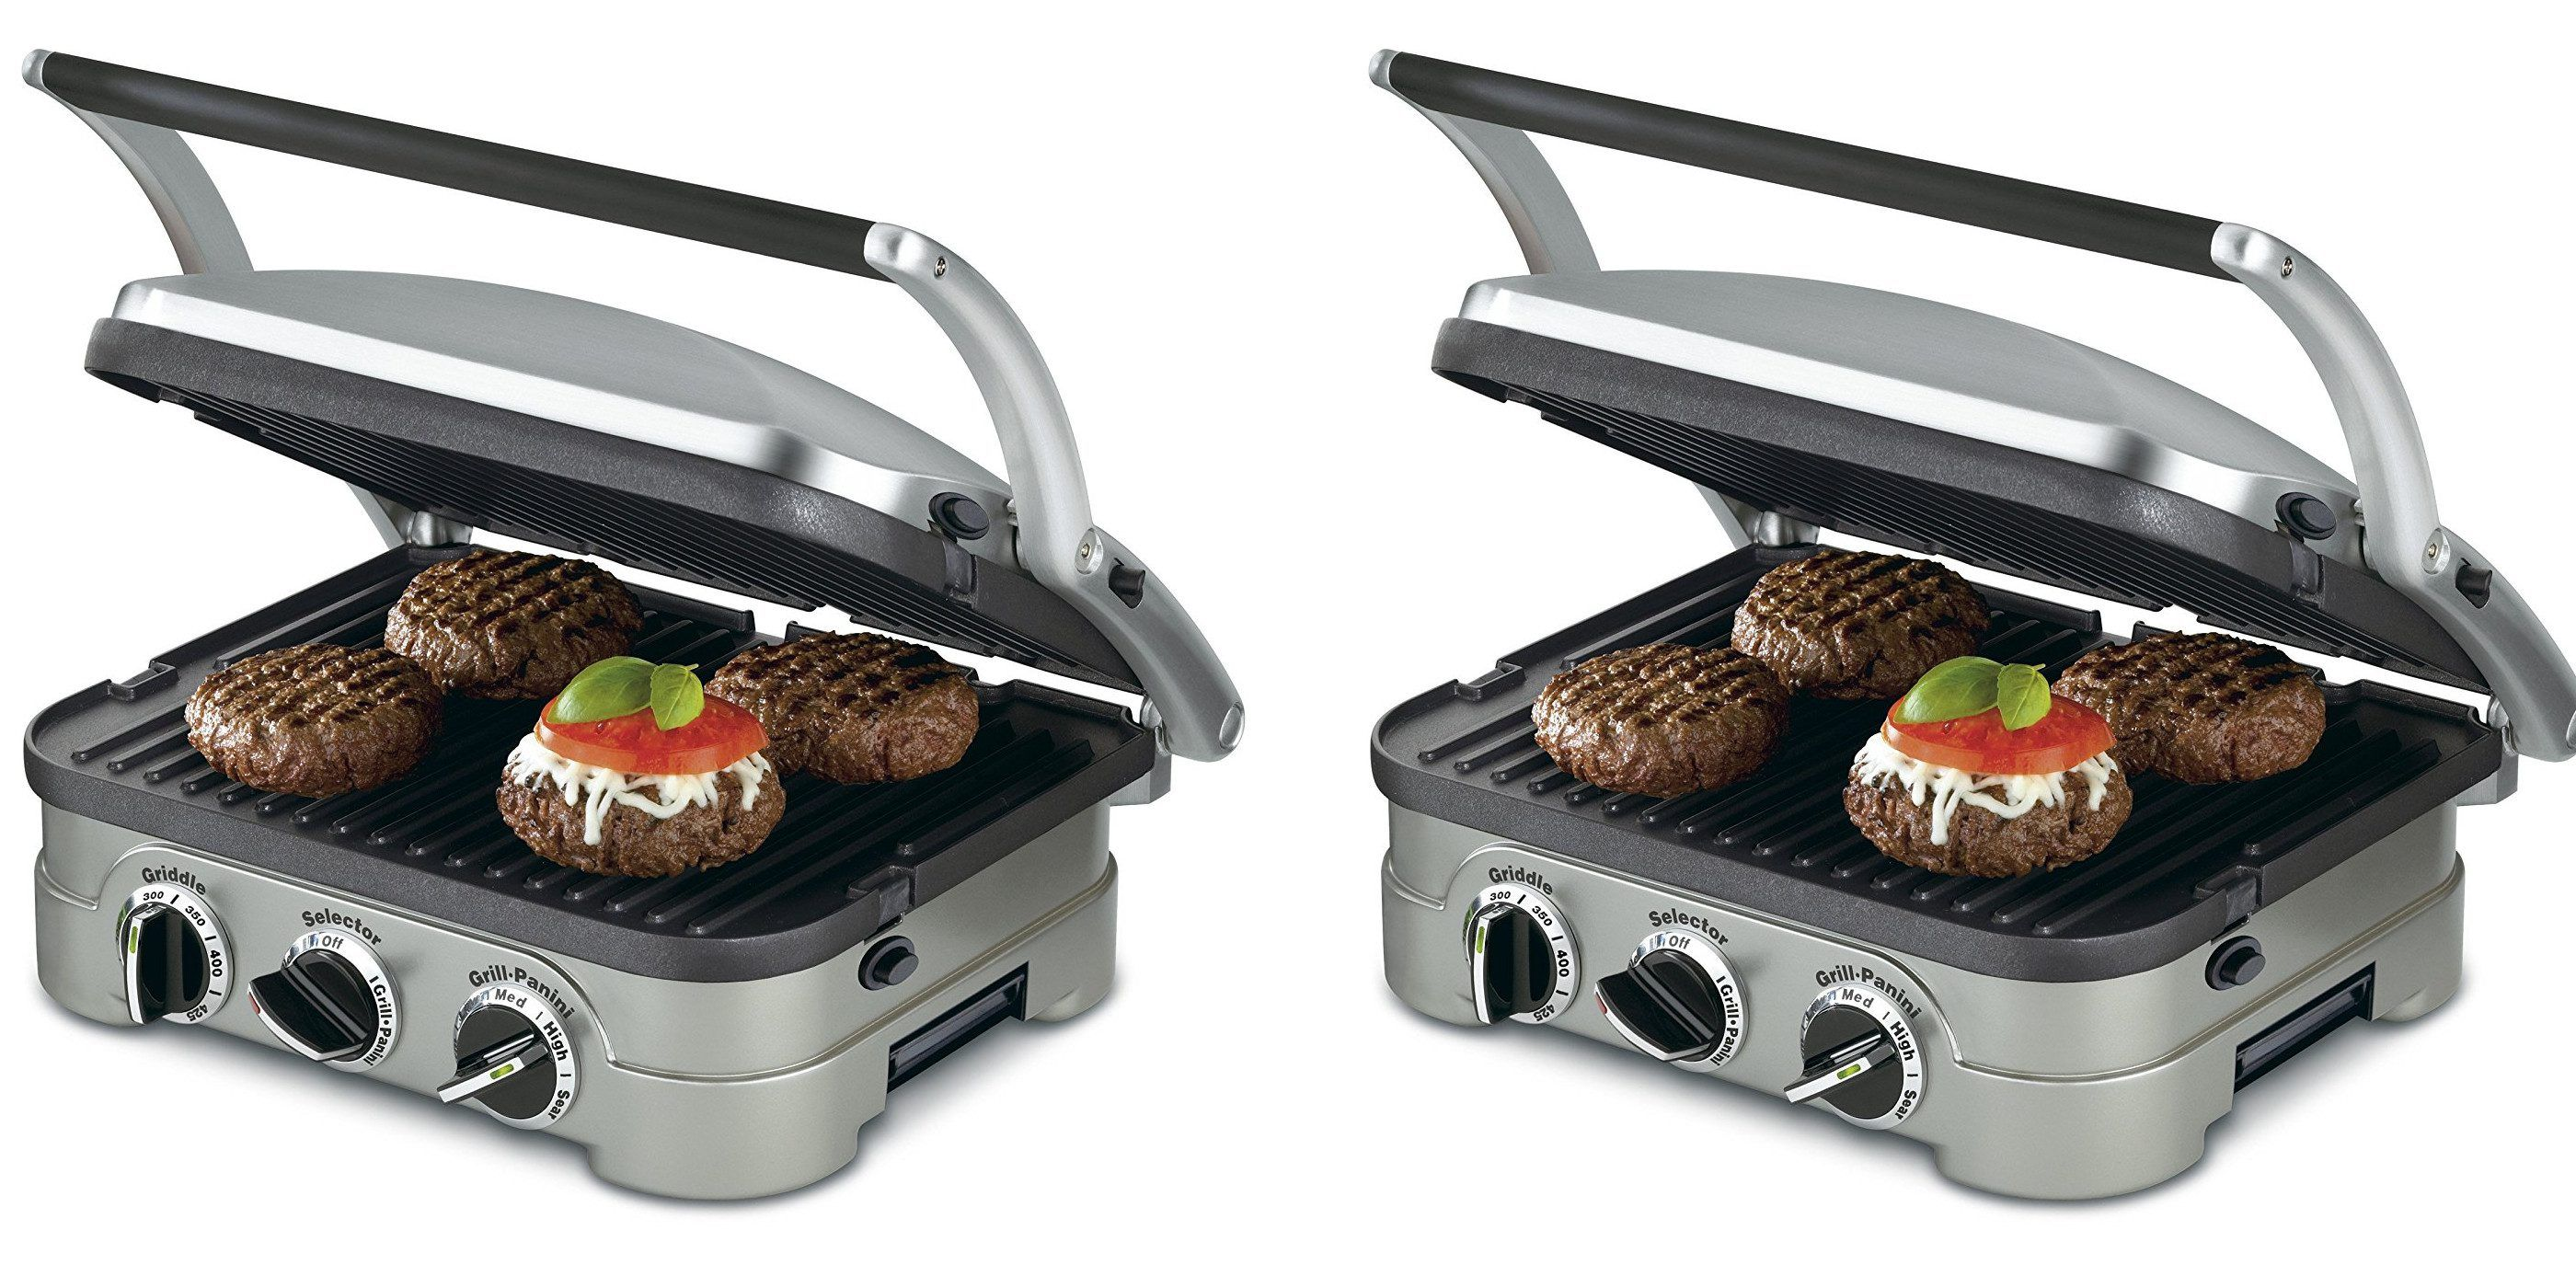 Cuisinart S Best Selling 5 In 1 Griddler Back Down To Amazon Low